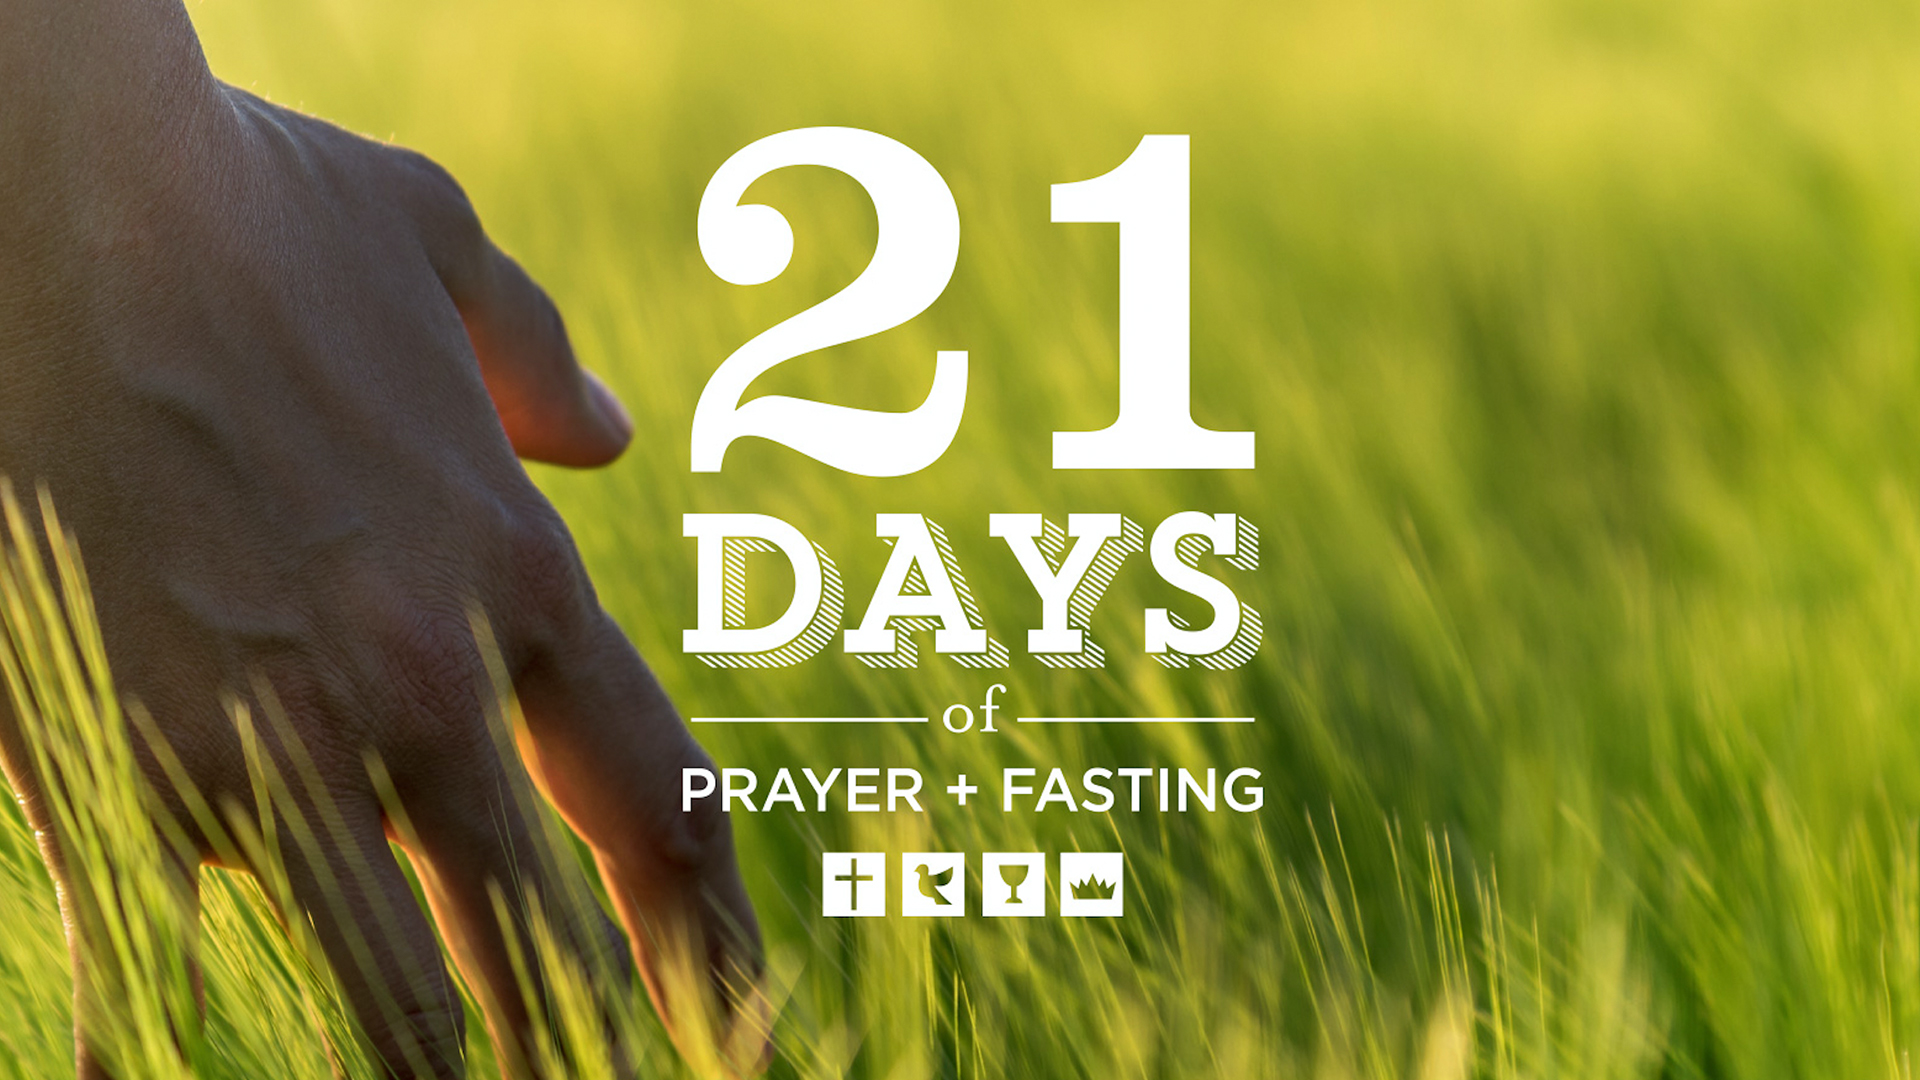 21 Days of Prayer + Fasting